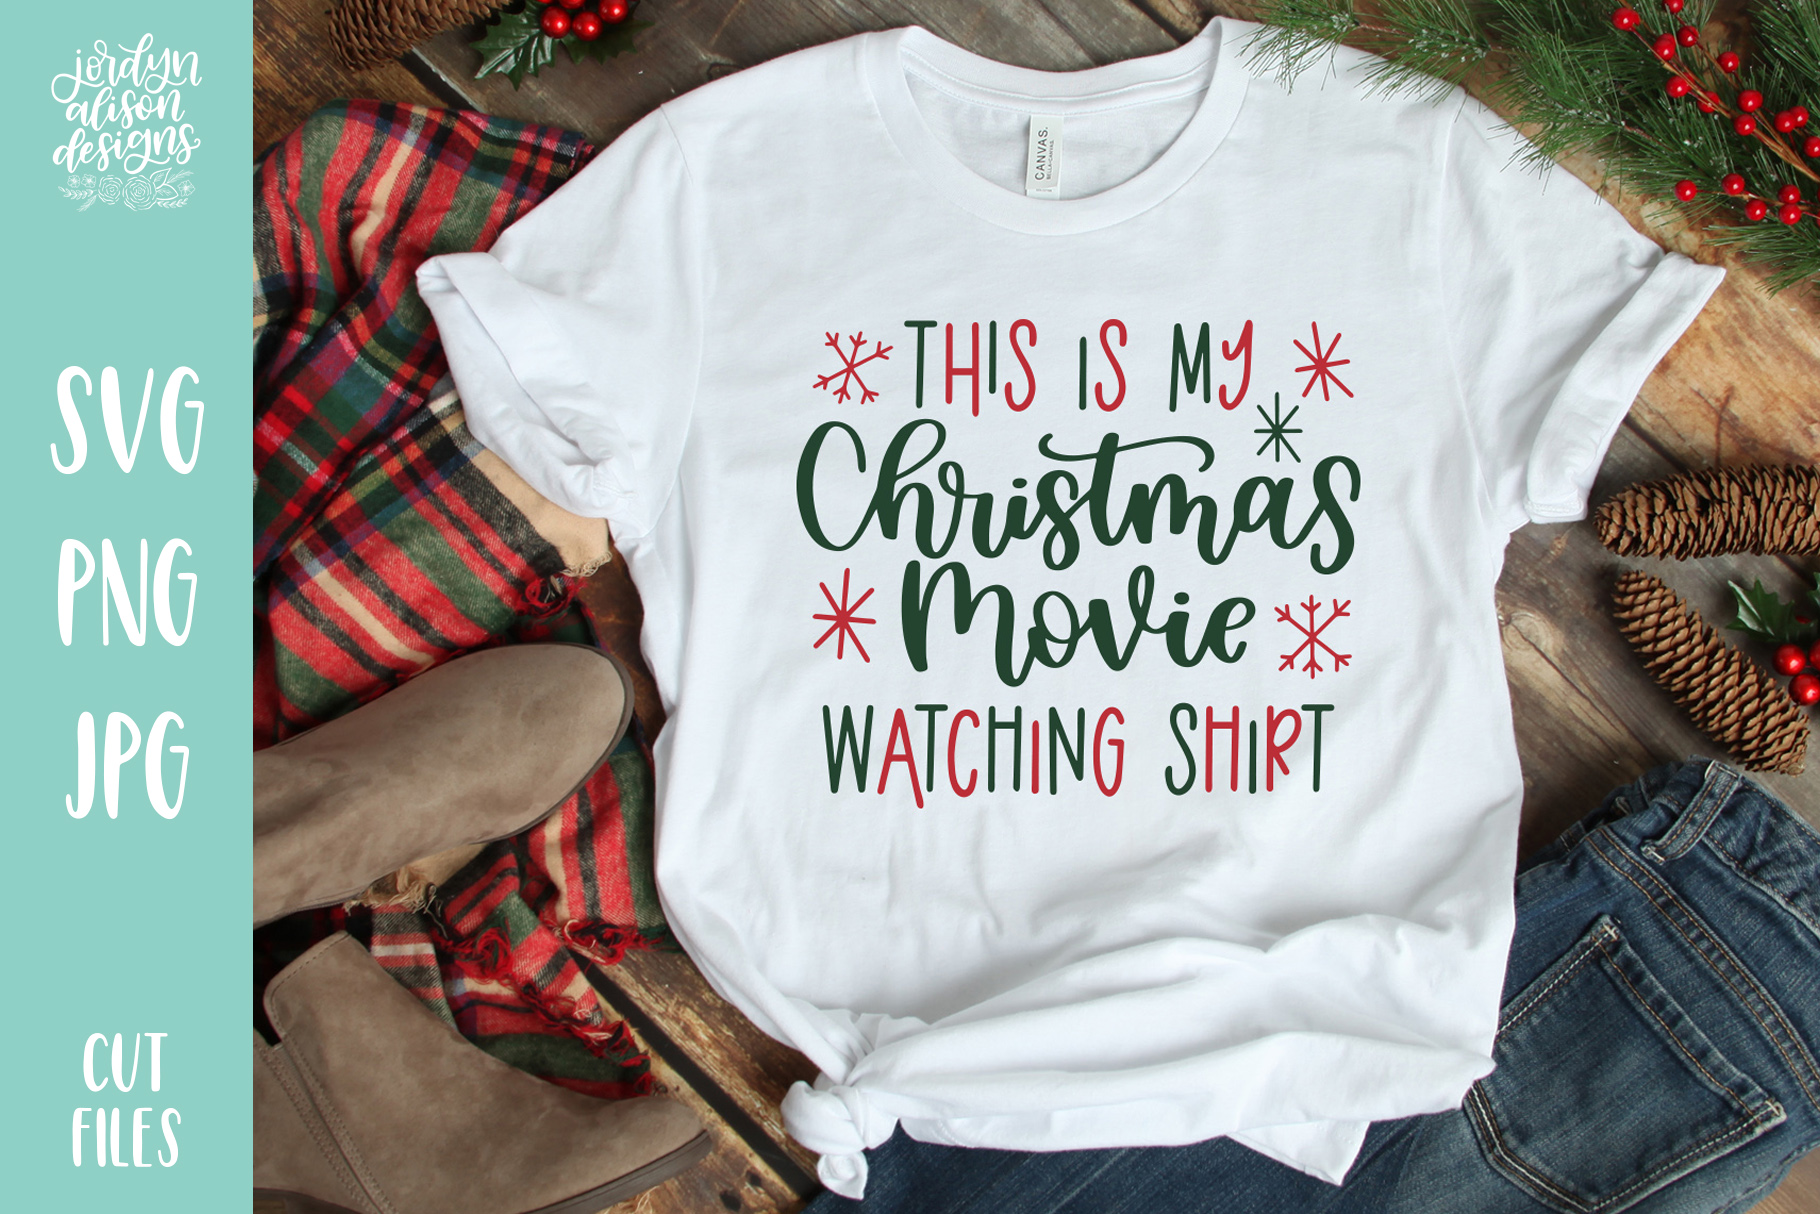 Download Free Christmas Movie Watching Shirt Graphic By Jordynalisondesigns for Cricut Explore, Silhouette and other cutting machines.